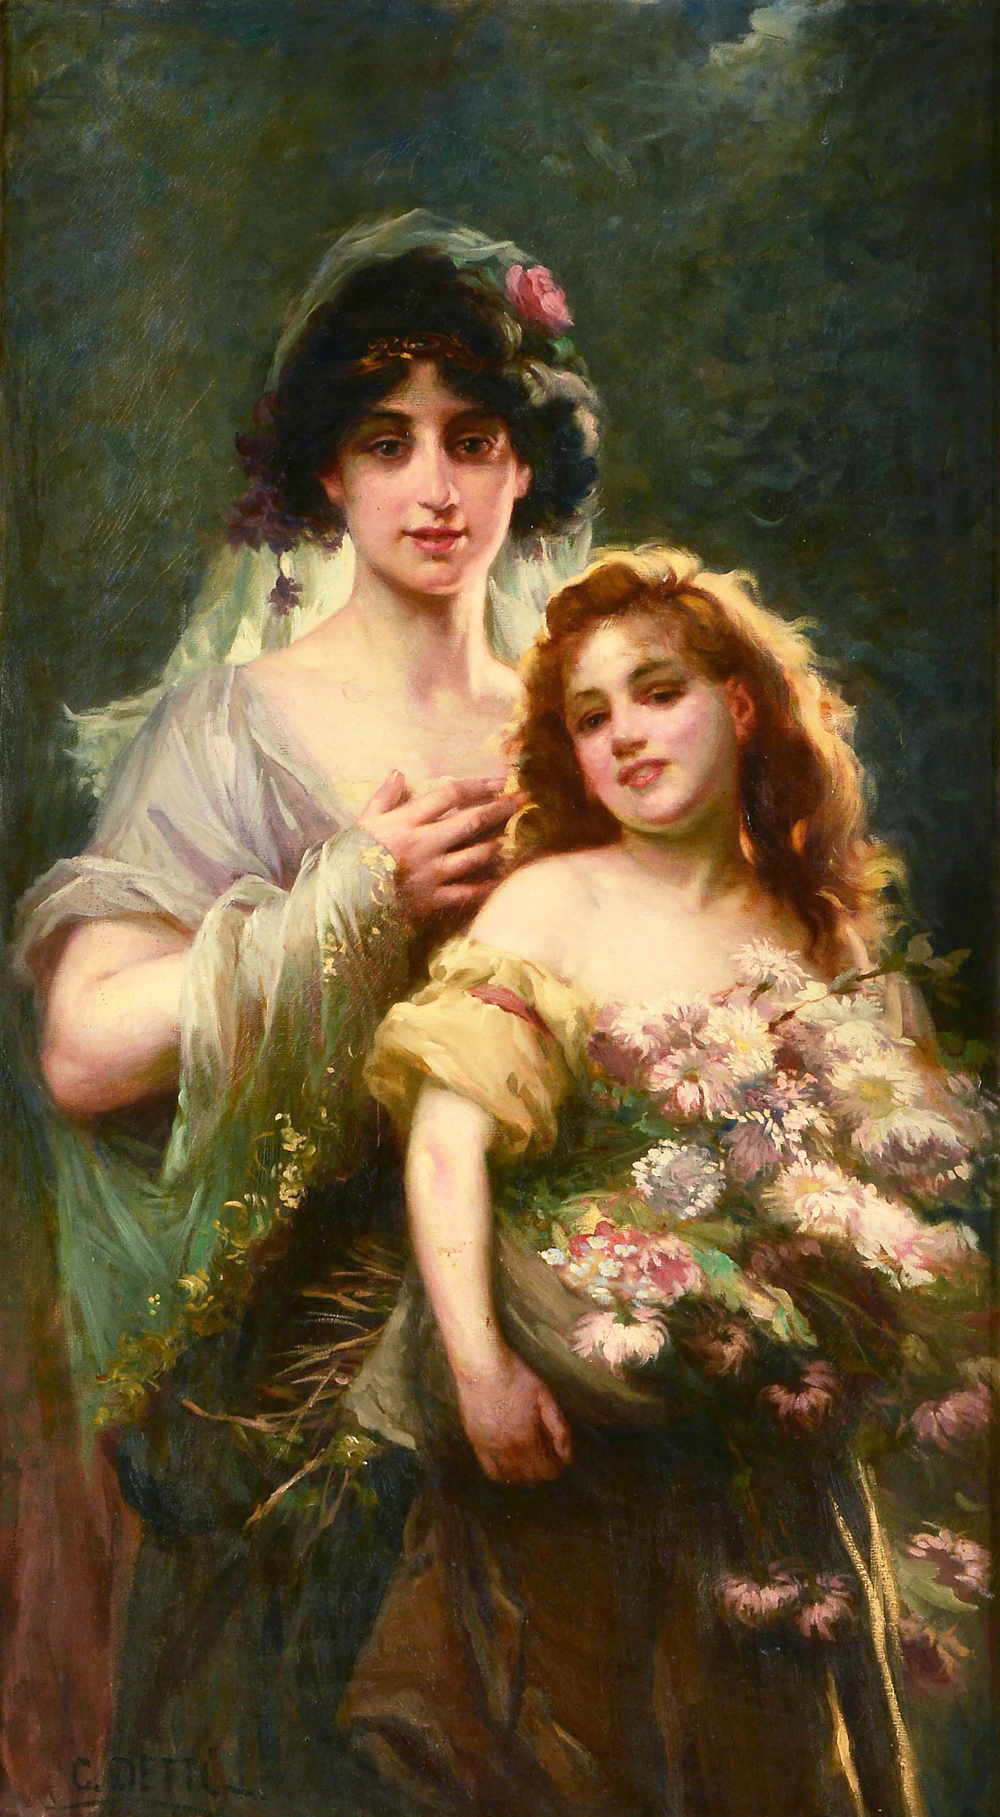 Portrait-of-Mother-and-Daughter-with-Flowers-Cesare-Augusto-Detti-Oil-Painting.jpg